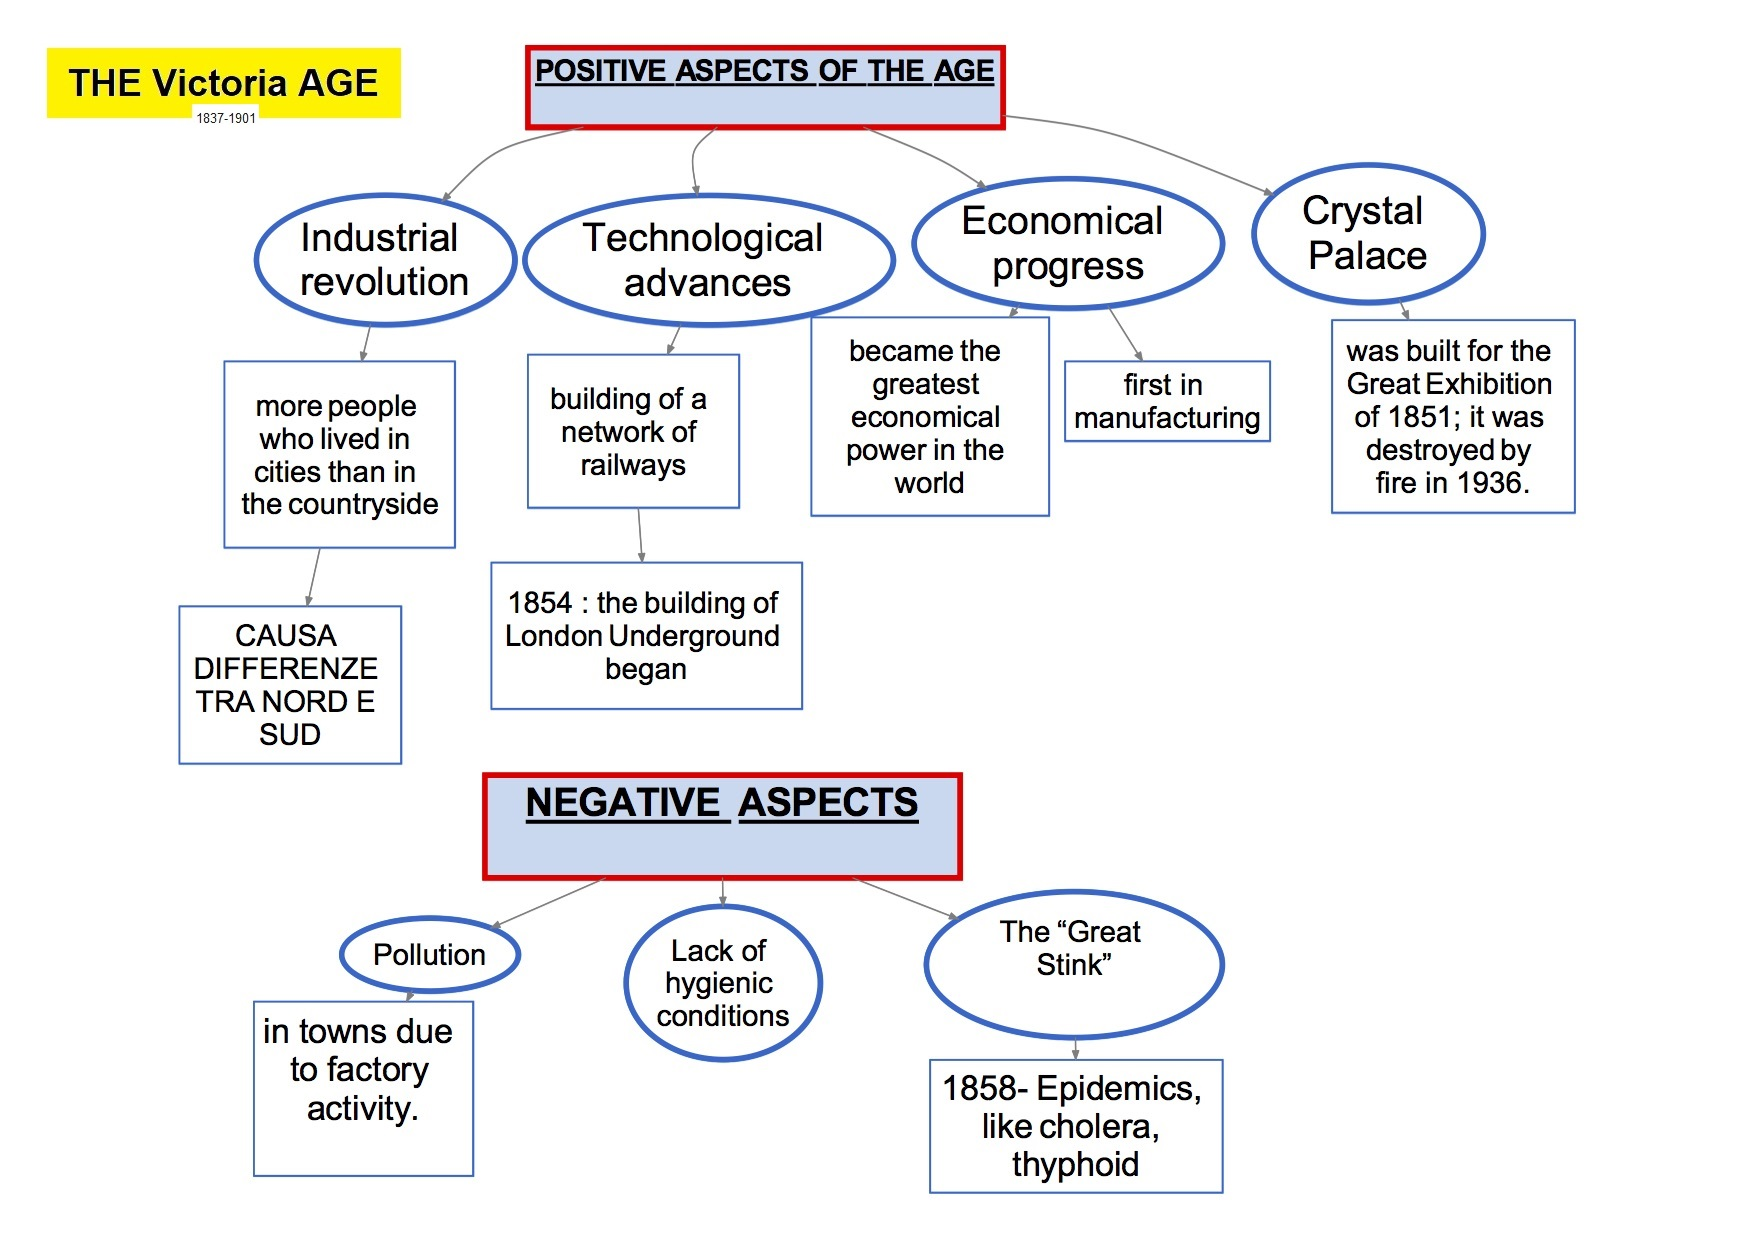 mappa concettuale visual map Inglese   THE Victoria AGE positive and negative aspects